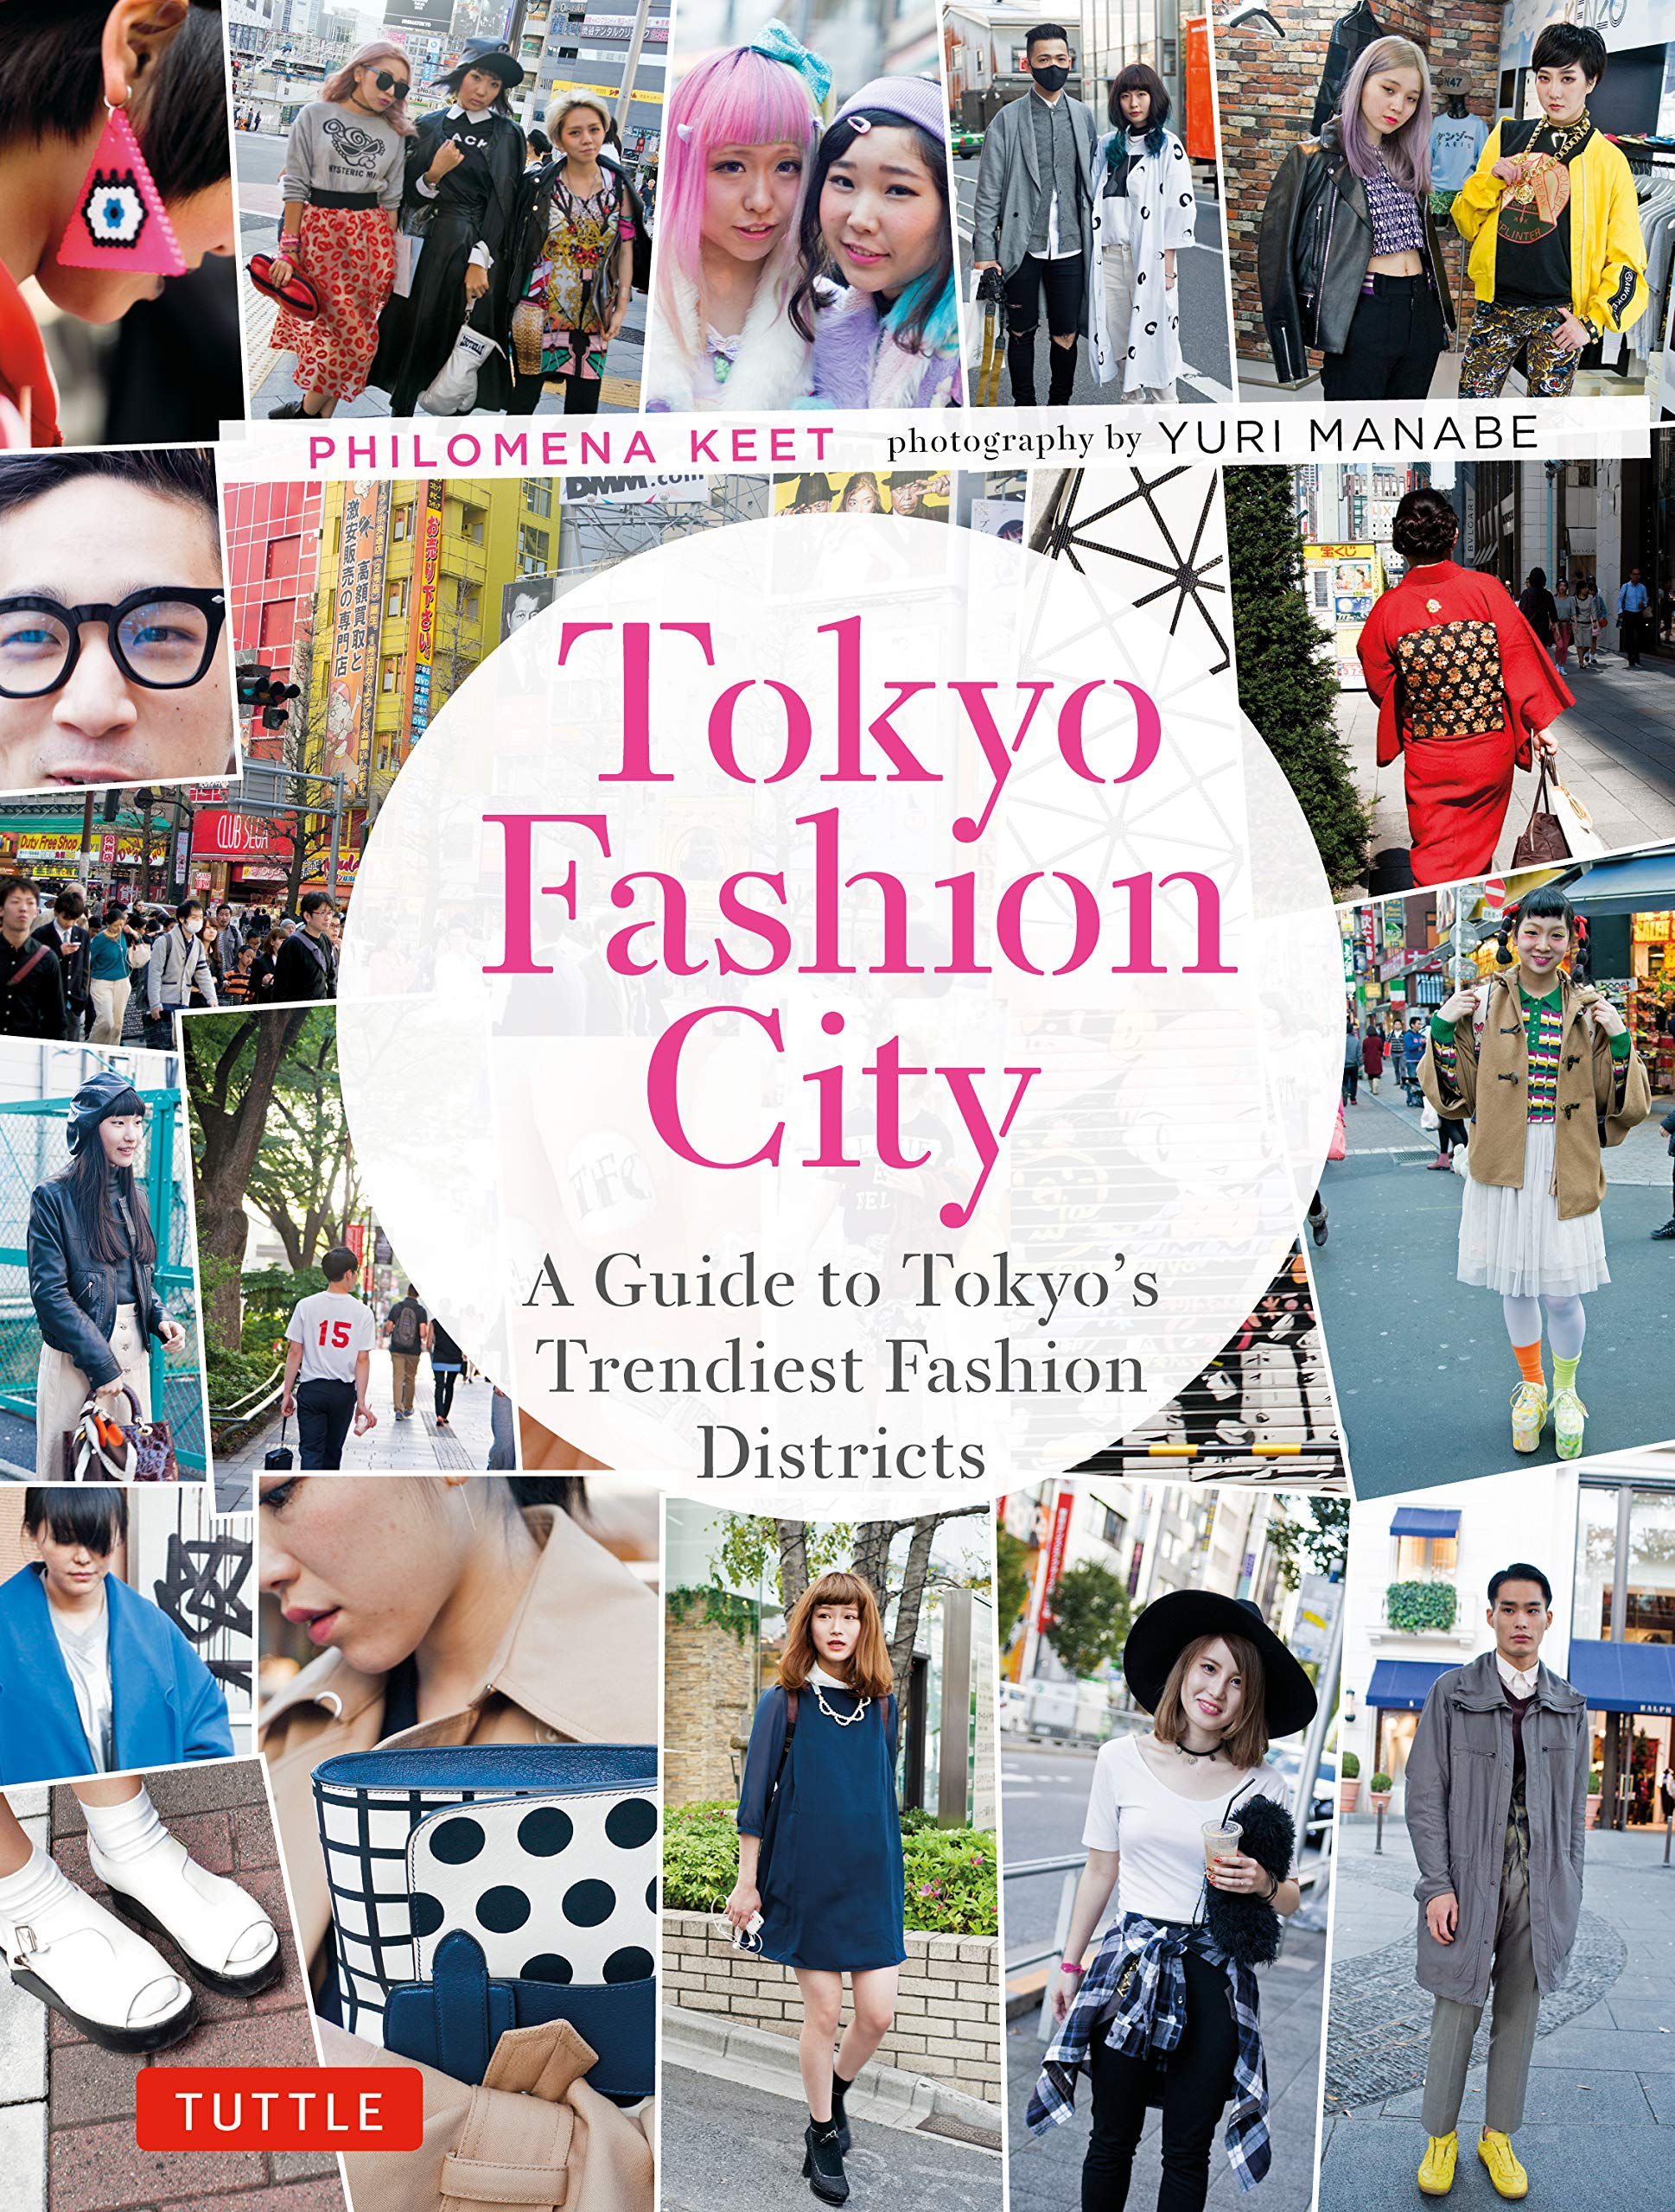 Tokyo Fashion City  A Detailed Guide To Tokyo's Trendiest Fashion Districts